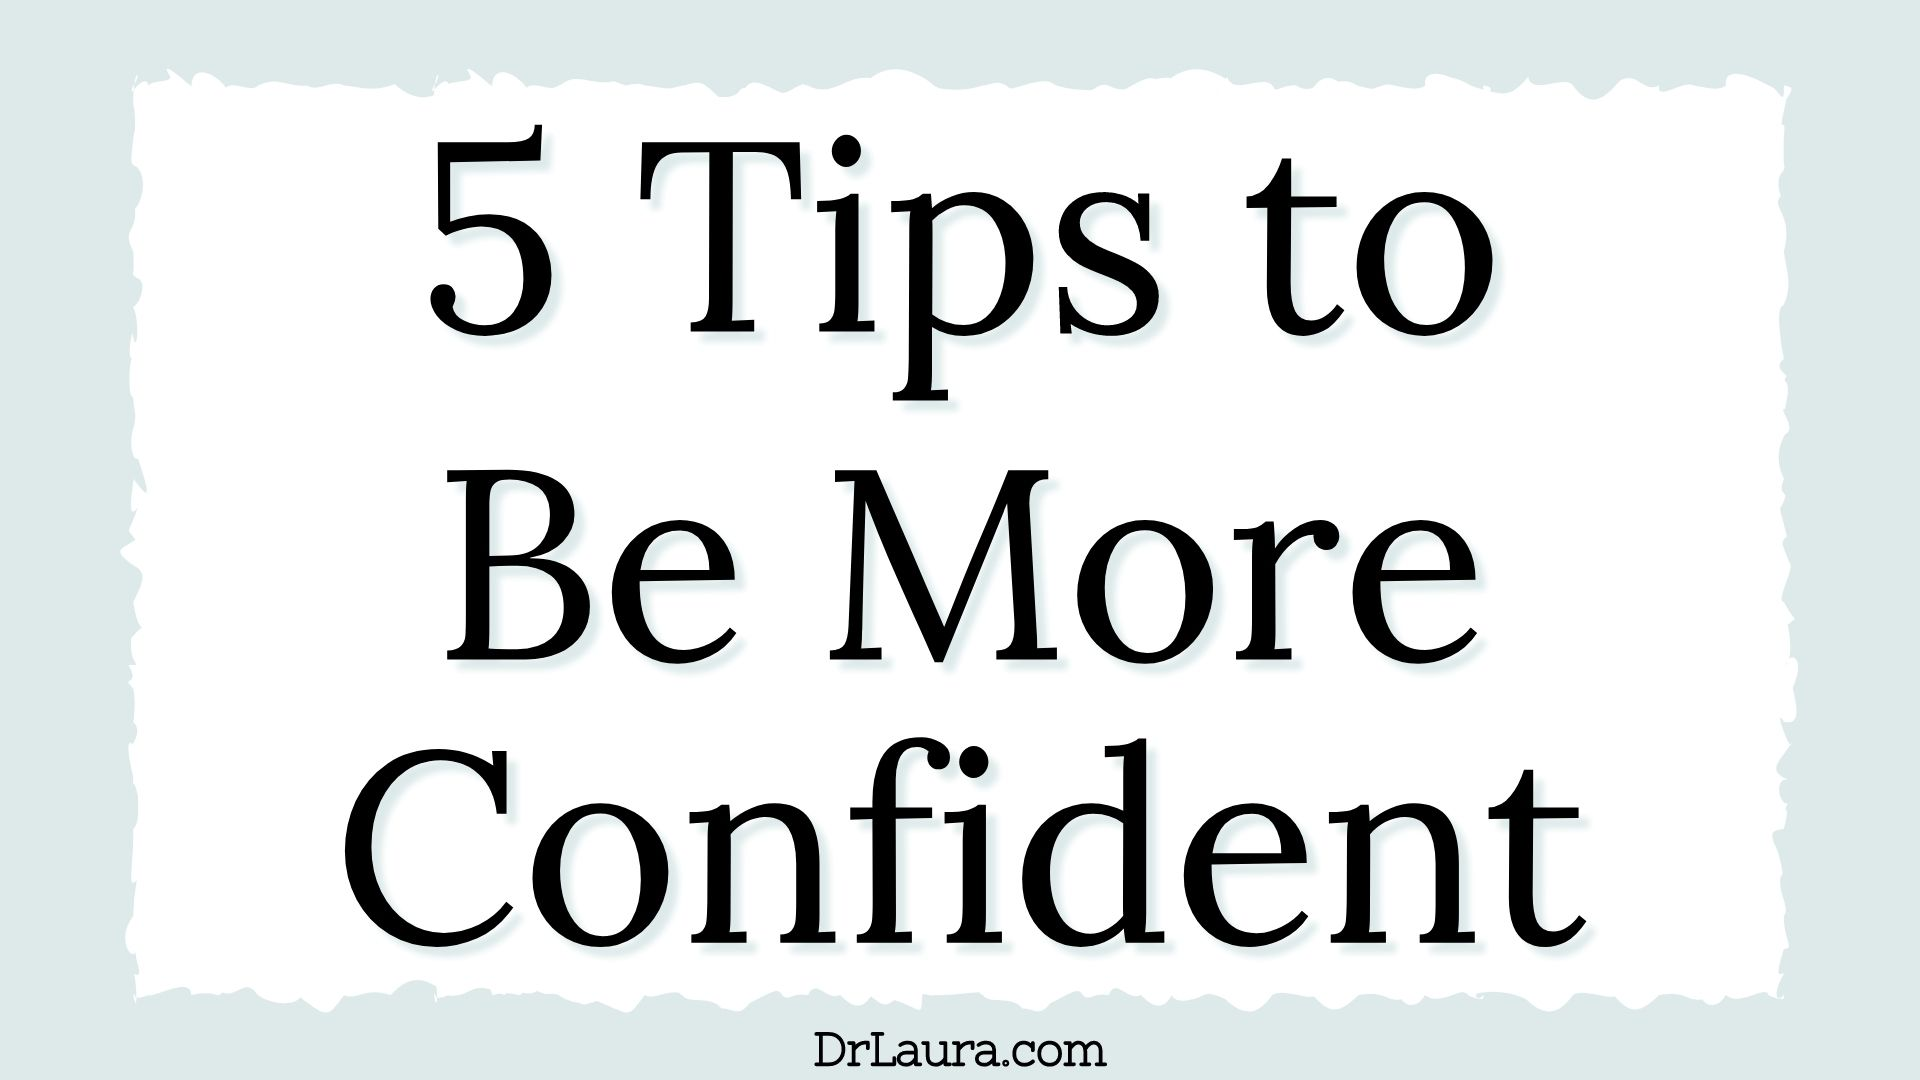 Blog: 5 Tips to Be More Confident